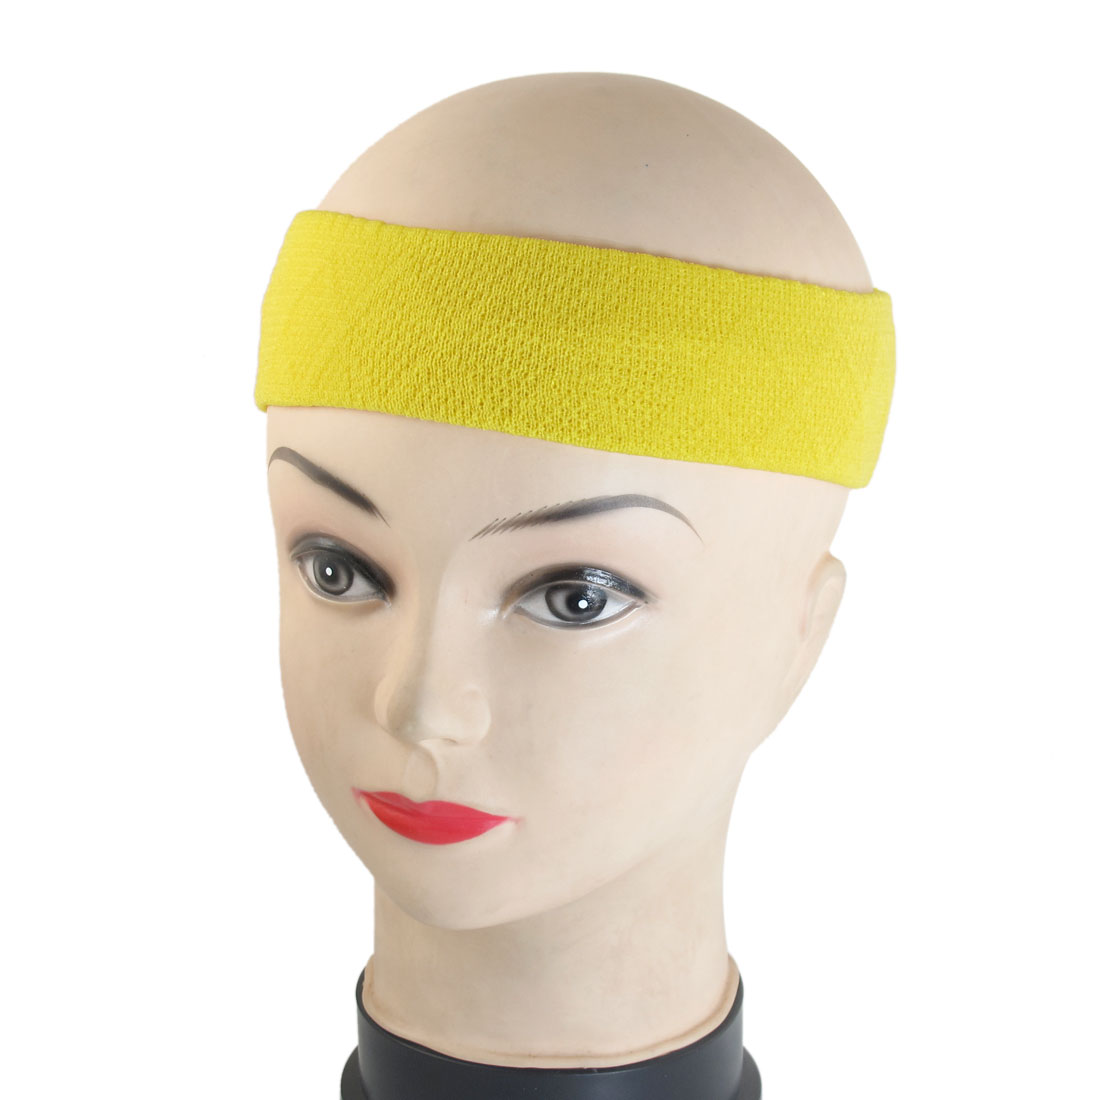 2 Pcs Solid Yellow Color Elastic Headband Spa Bathing Hair Band for Ladies